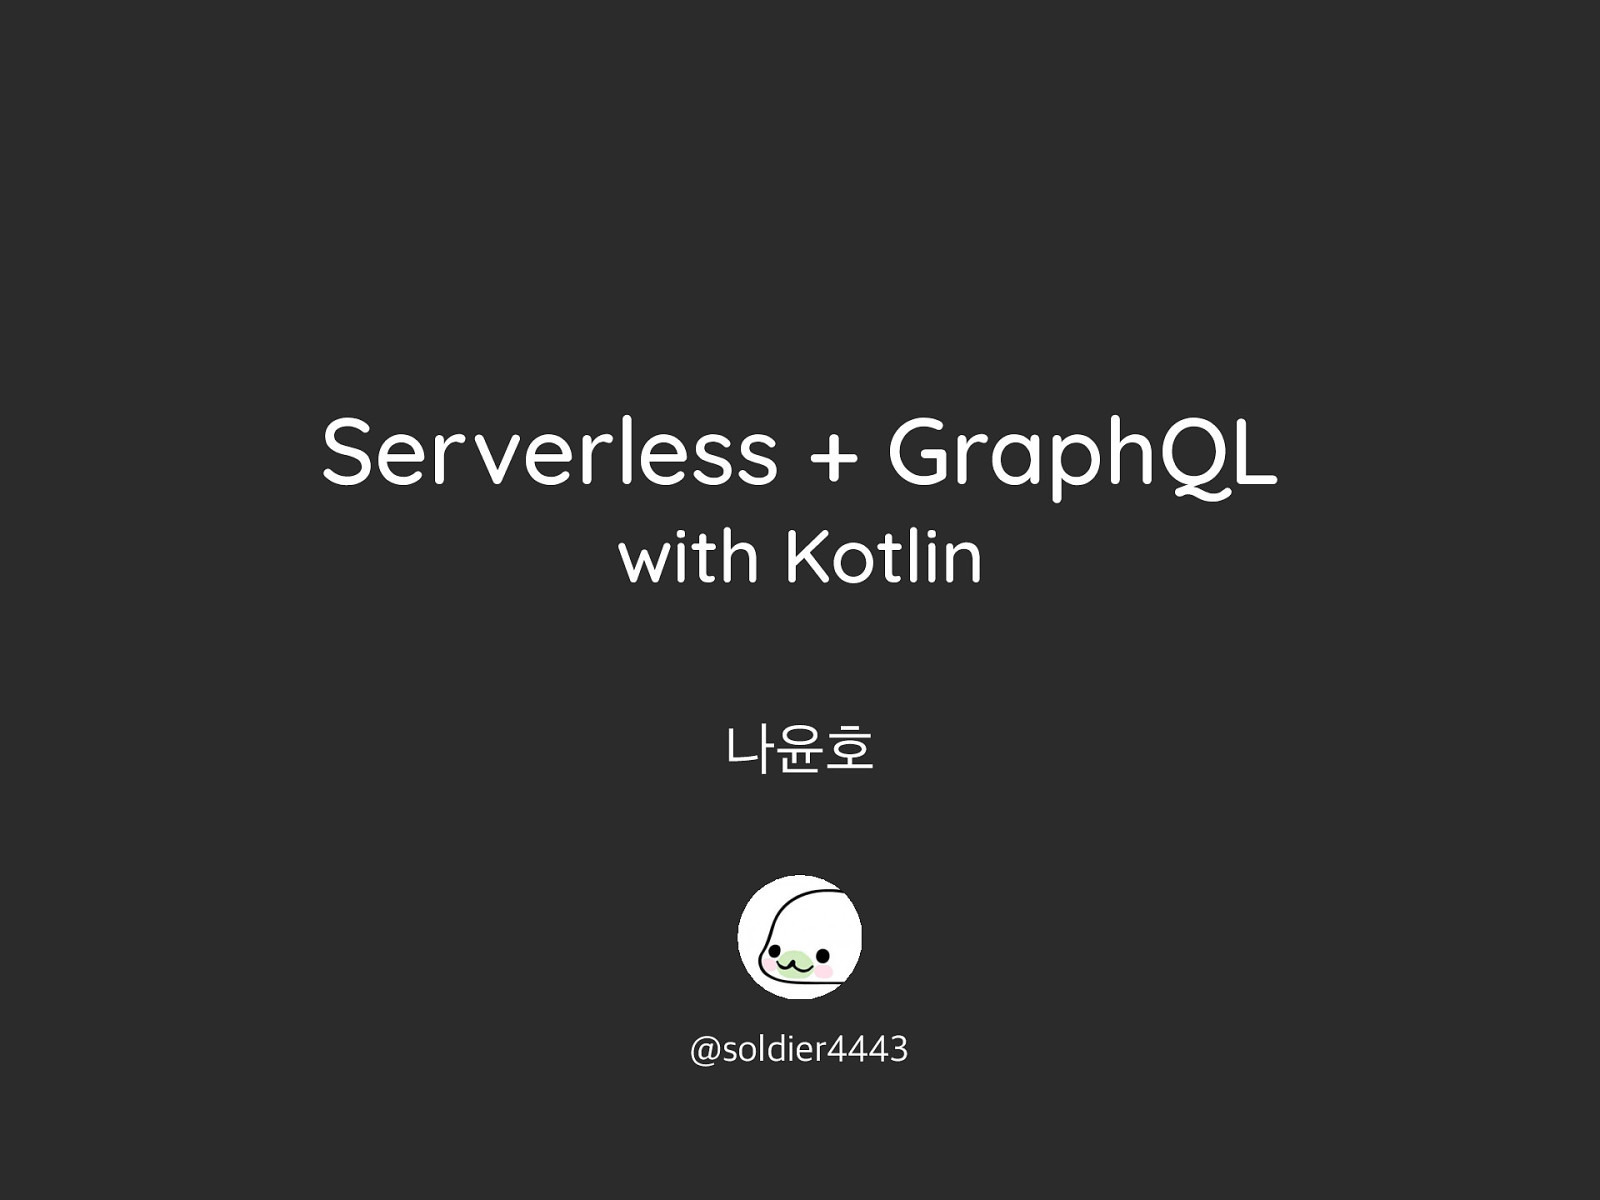 [DDD 2nd] Serverless GraphQL with Kotlin